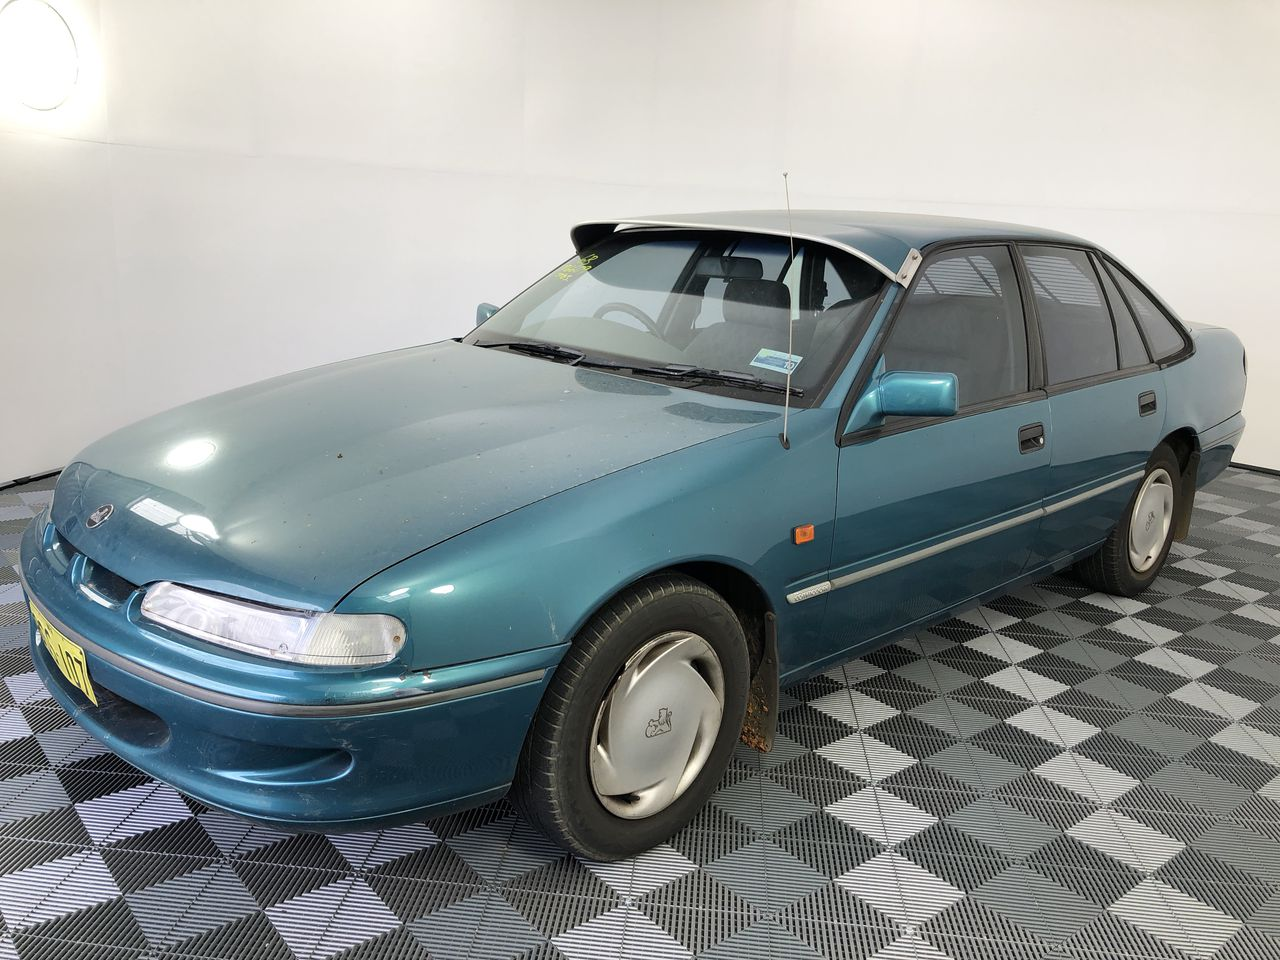 1994 Holden Commodore Acclaim VR Automatic Sedan